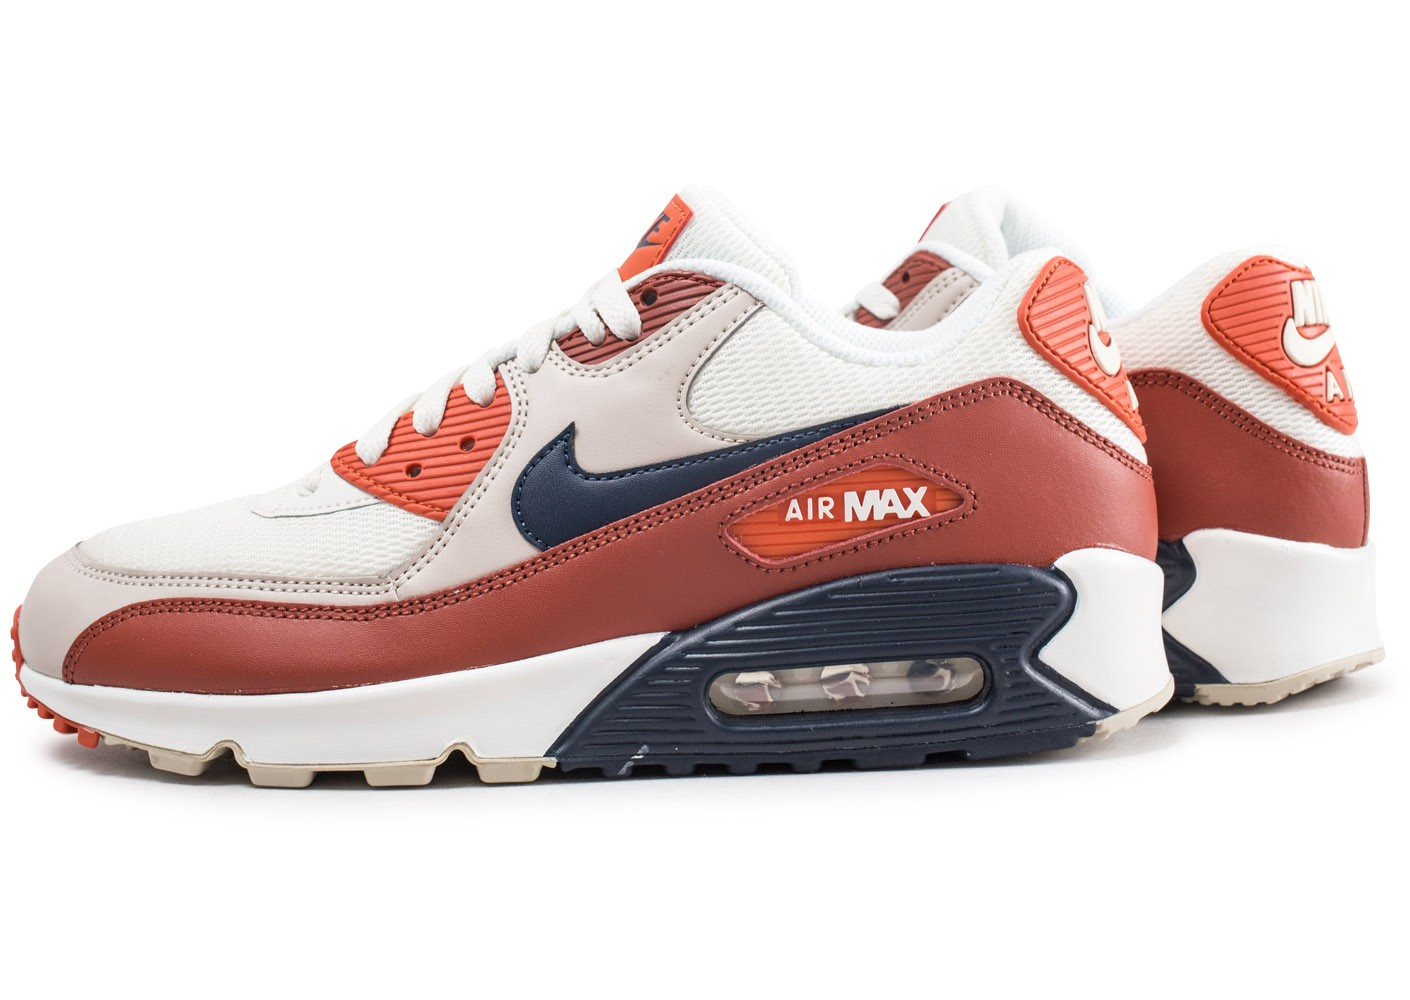 Nike Air Max 90 Essential Mars Beige/Bleu/Marron/Orange - Chaussures Baskets basses Homme